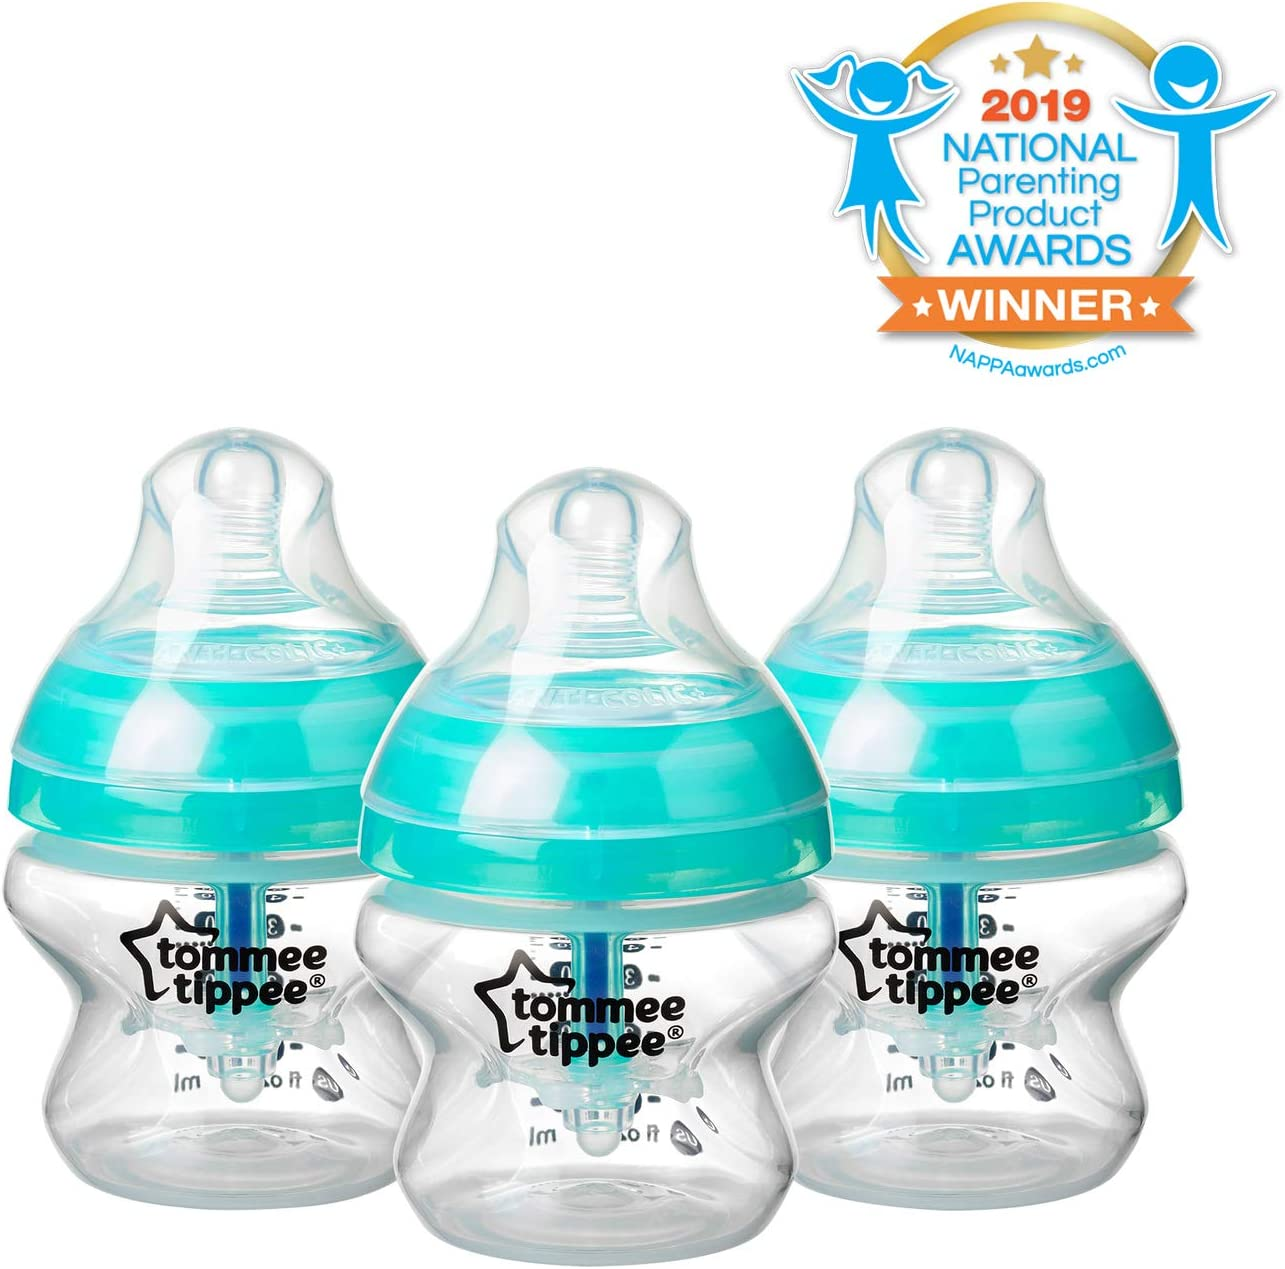 Blue Tommee Tippee Advanced Anti-Colic Baby Bottle 5 Ounce 3 Count BPA-Free Extra-Slow Flow Breast-like Nipple Heat-Sensing Technology